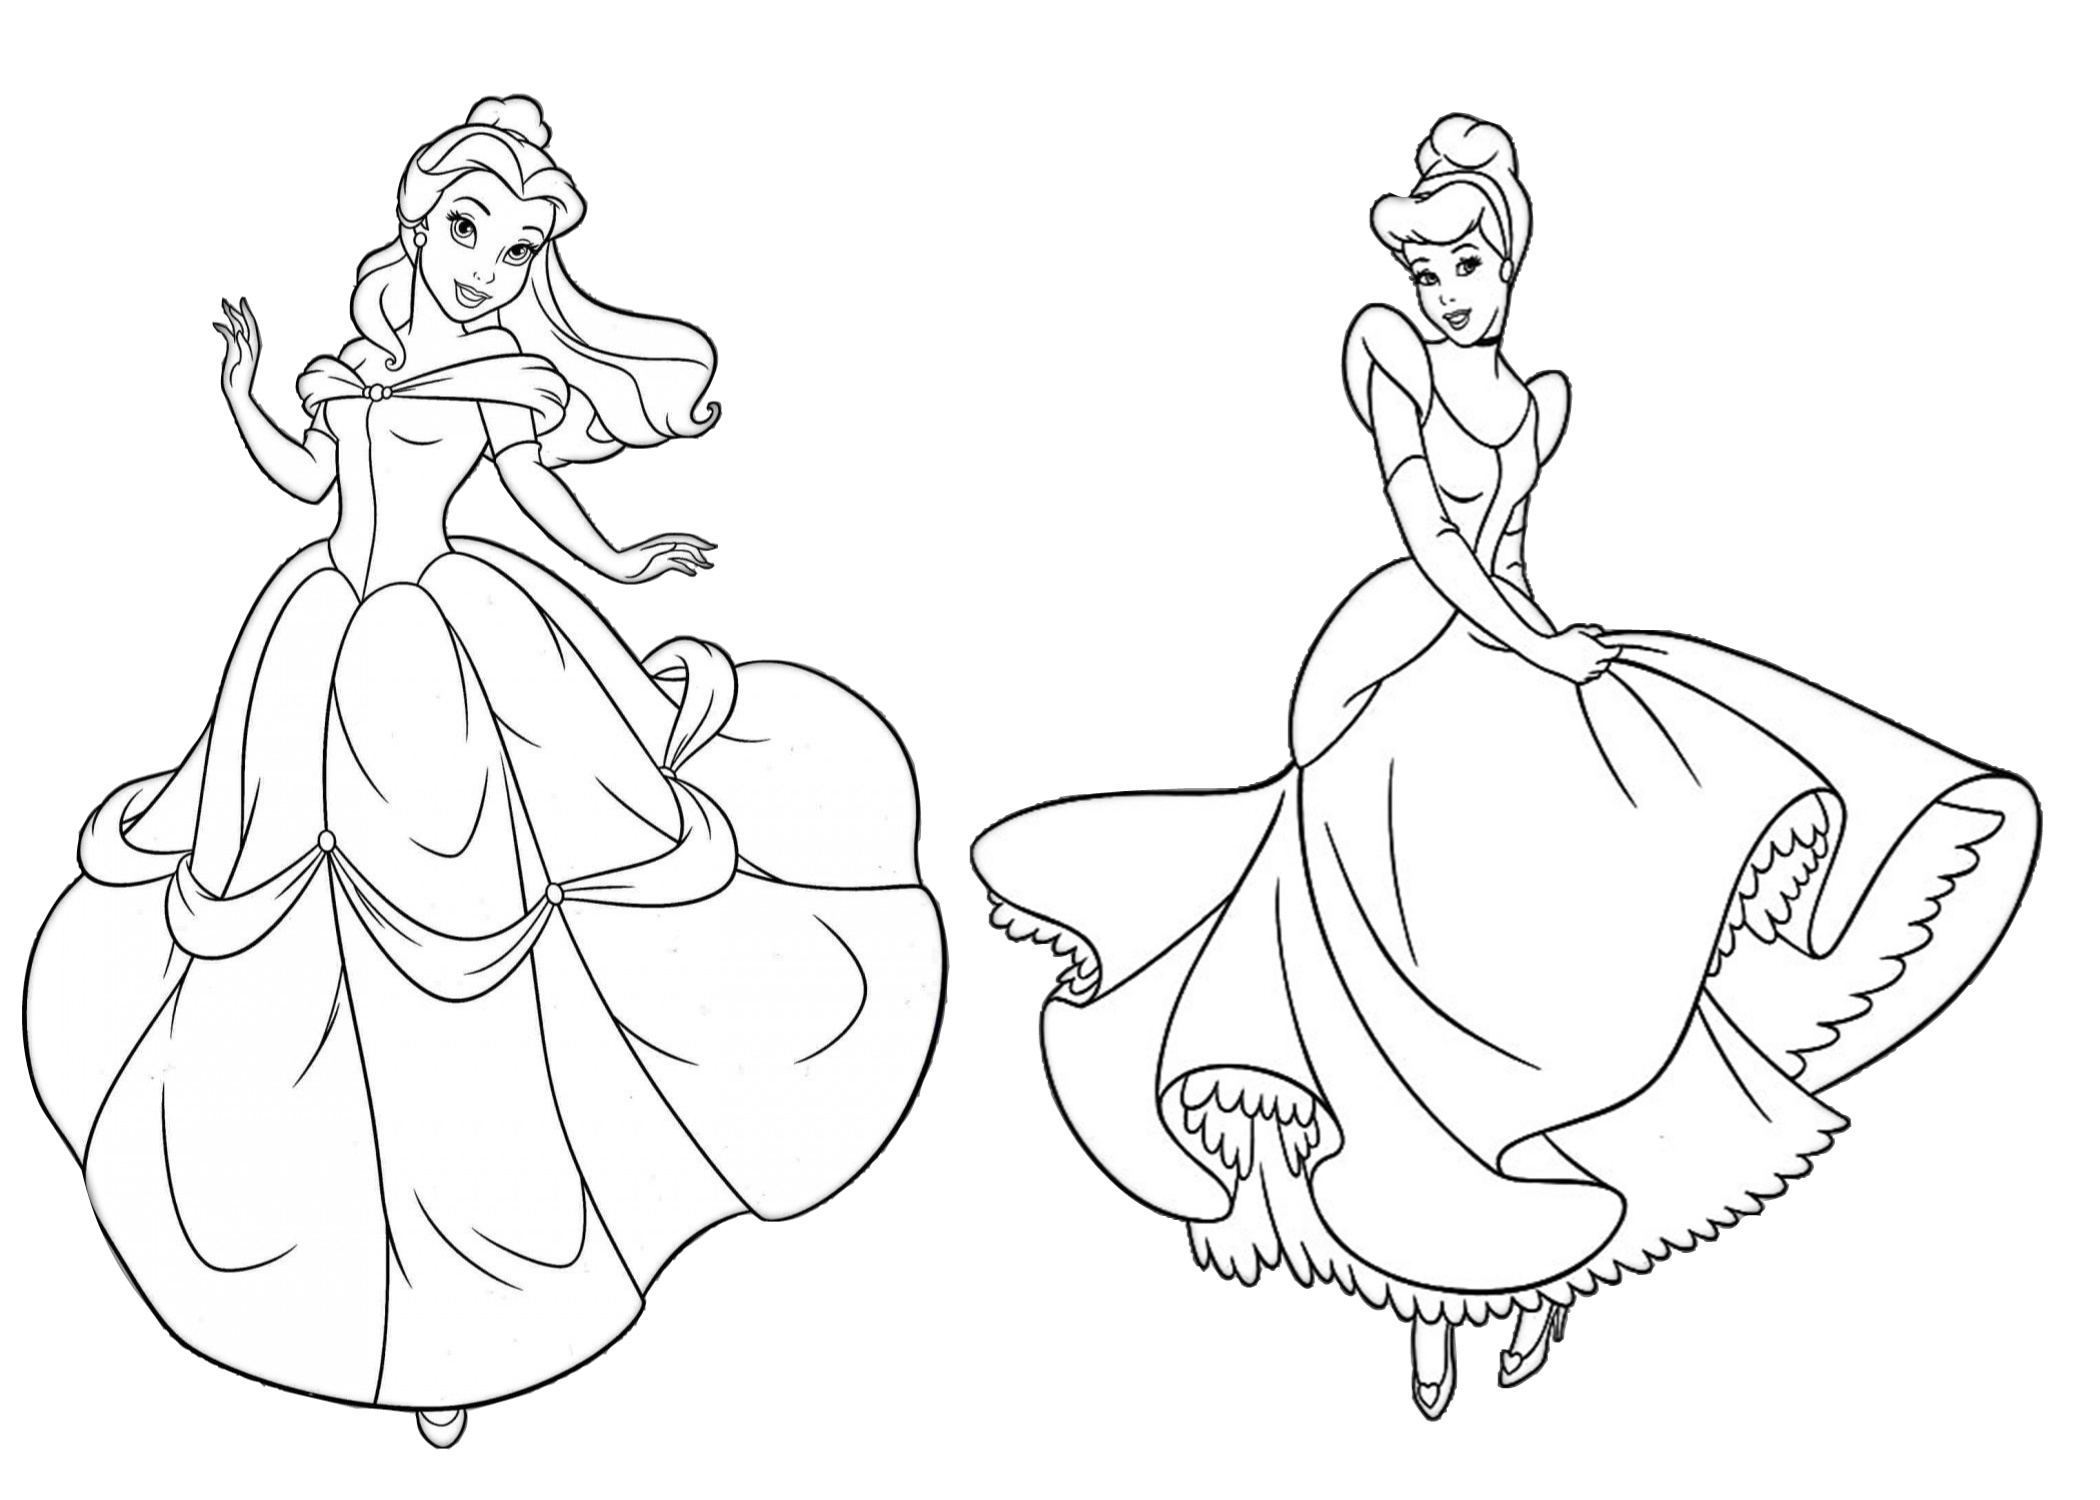 belle and cinderella coloring pages 33 disney princess coloring pages for girls print color pages coloring and belle cinderella